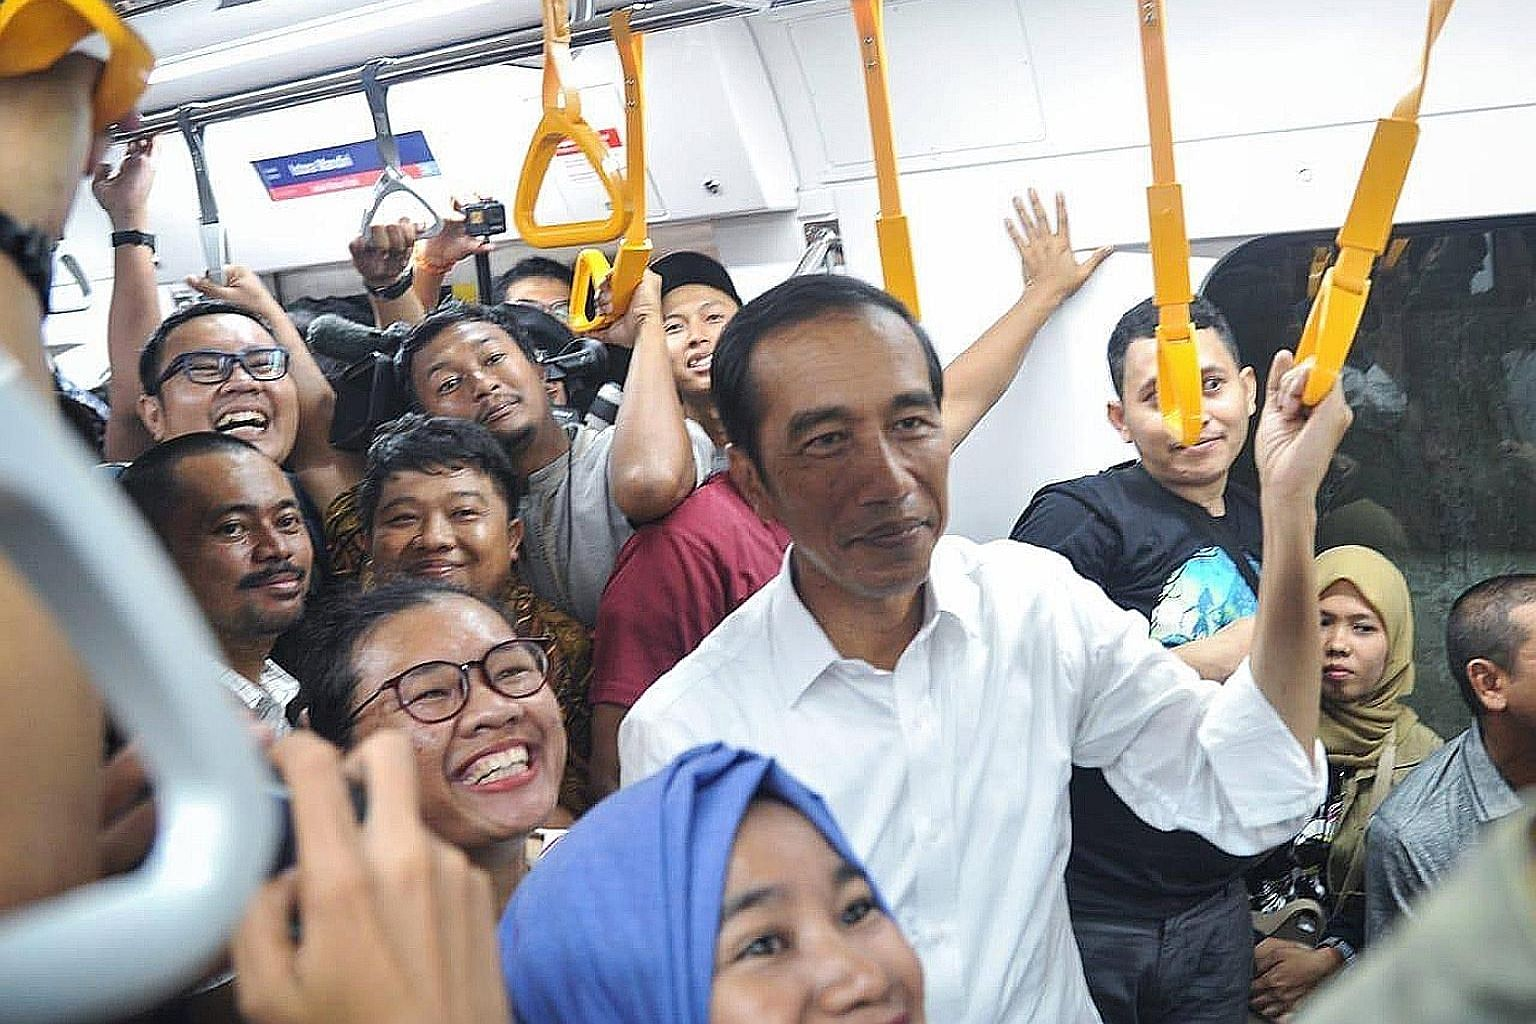 President Joko Widodo surrounded by commuters while taking the new MRT line in Jakarta on Sunday. Quick-count results by local pollsters showed the President as most likely to win the election, a result now being contested by his opponent, Mr Prabowo